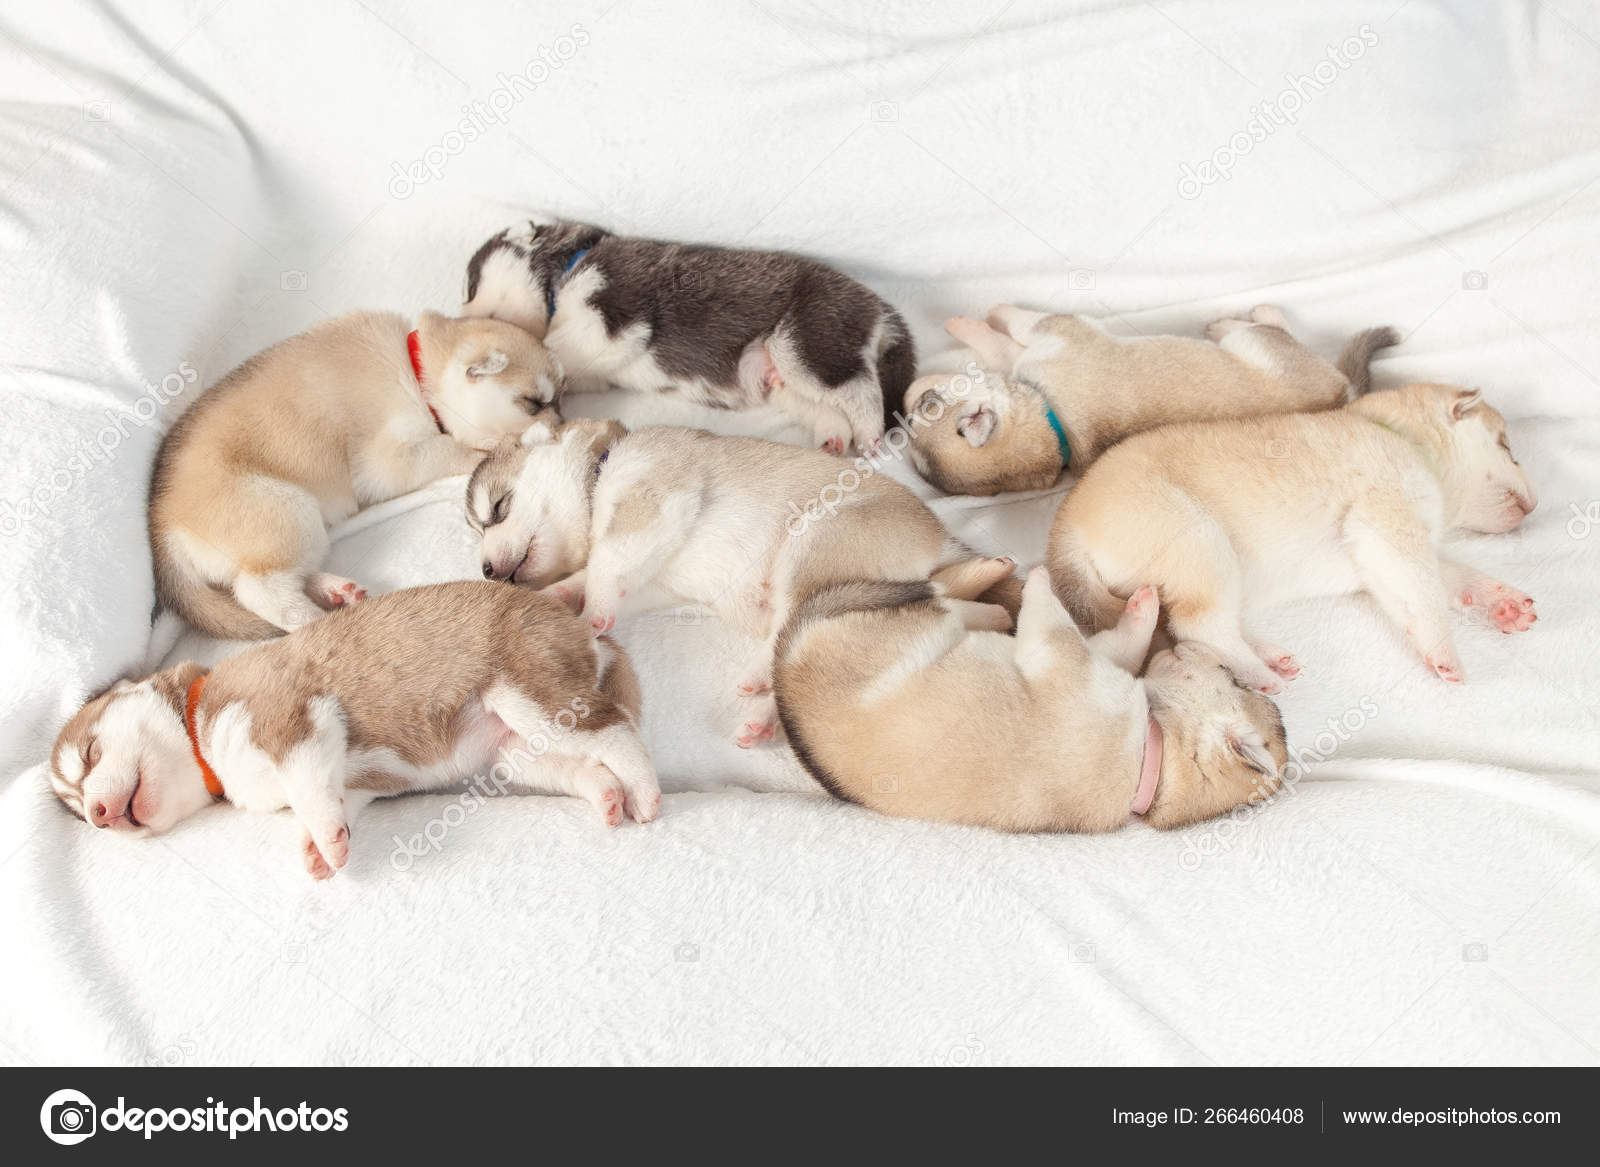 Beautiful Siberian Husky Puppies New Born Stock Photo C Lobodaphoto 266460408